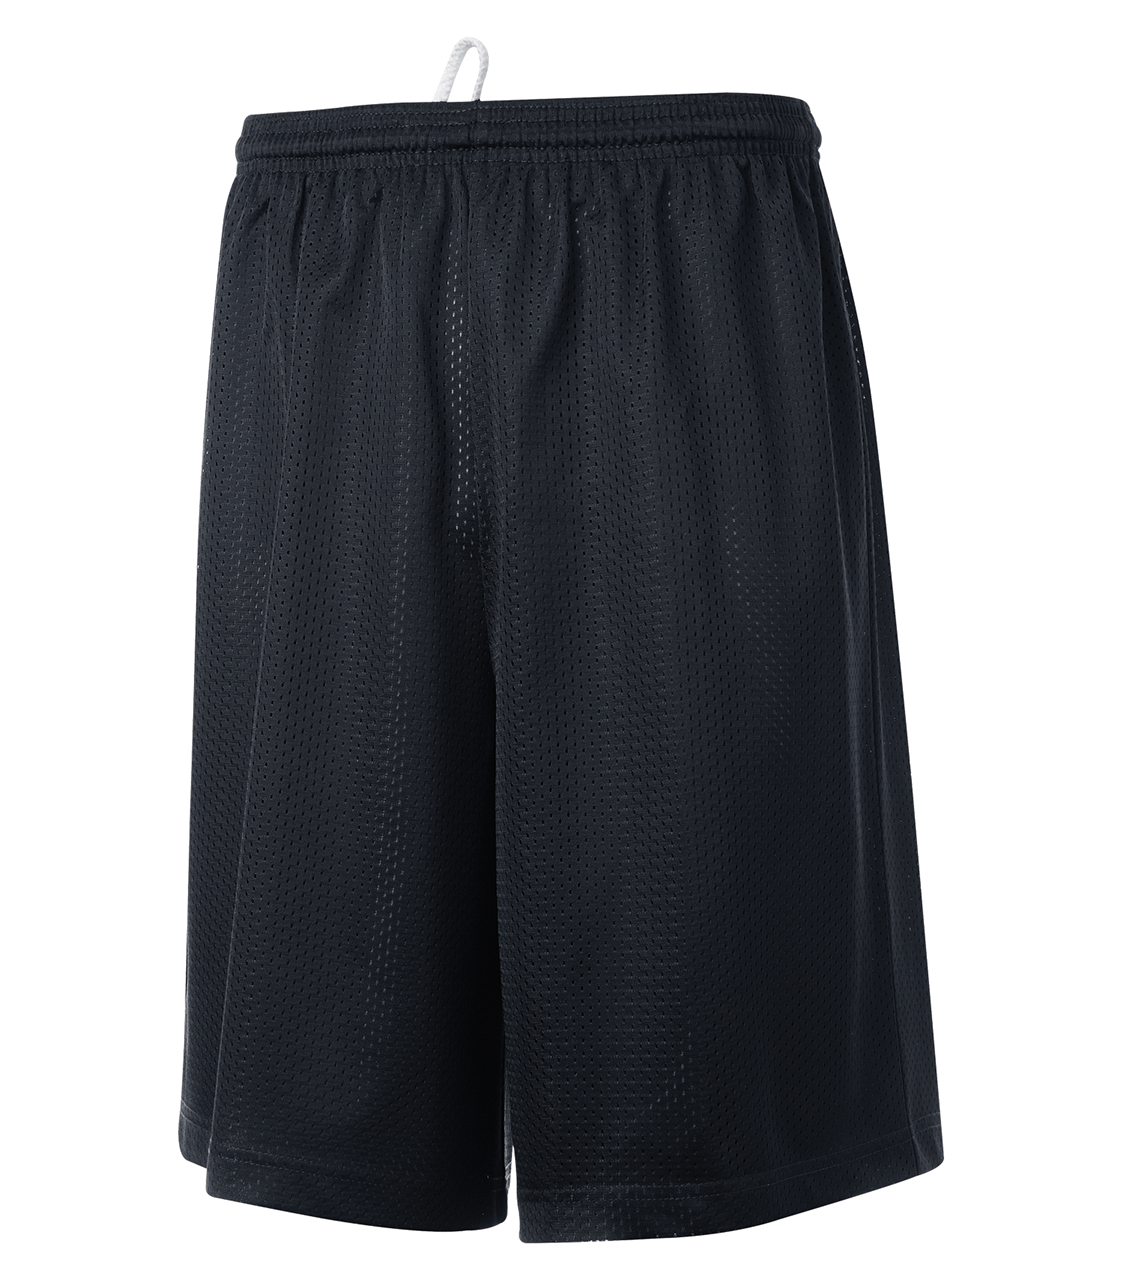 Picture of ATC Pro Mesh Short